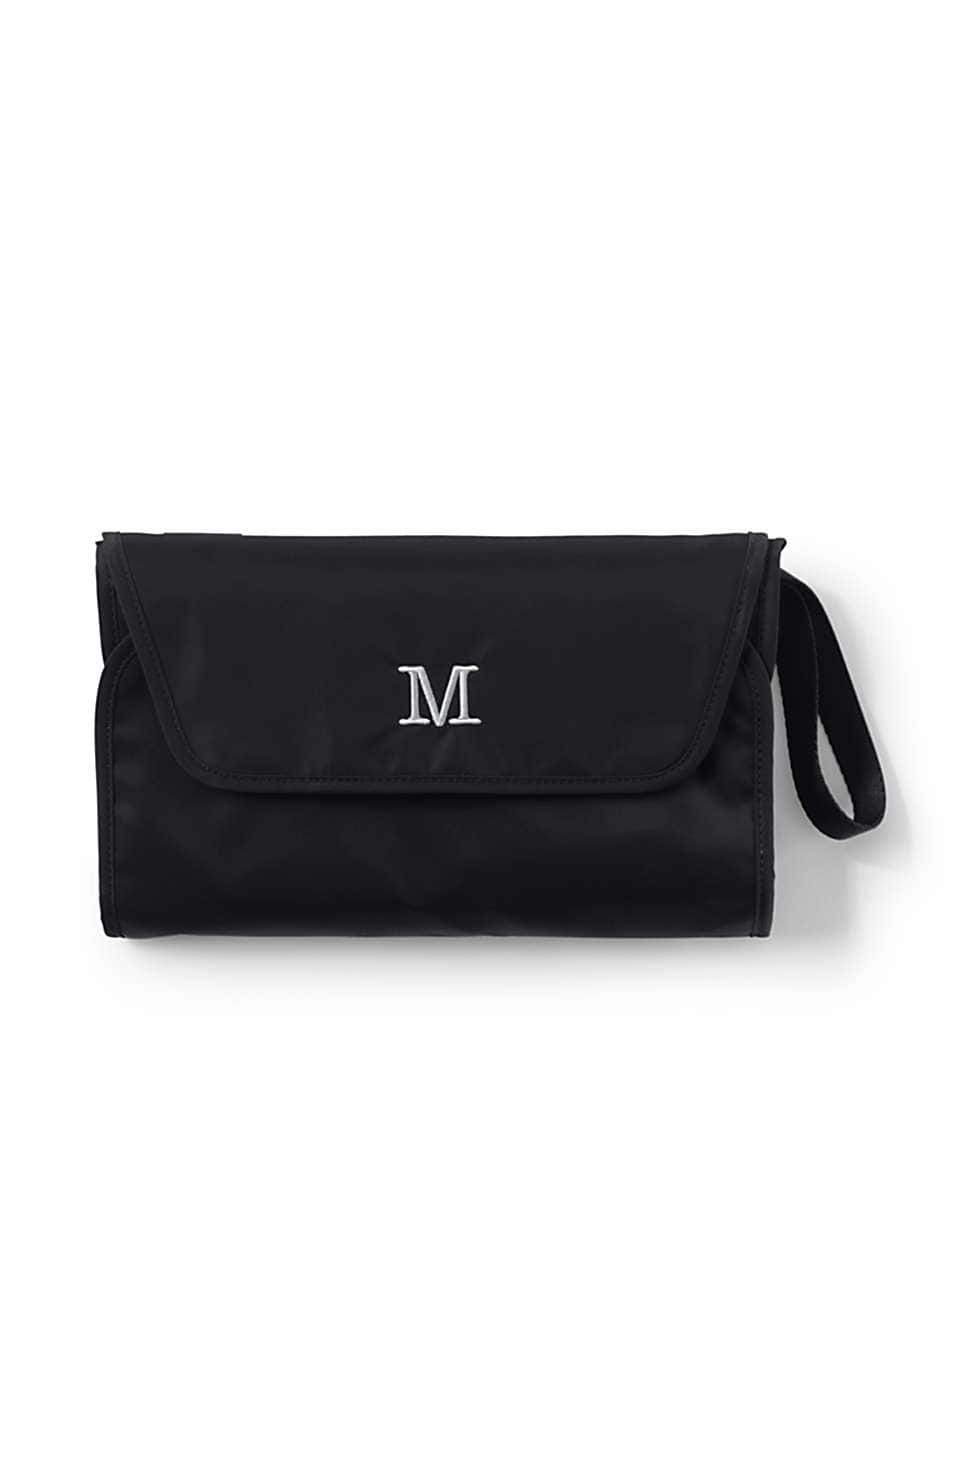 On The Go Diaper Changing Clutch (Black)